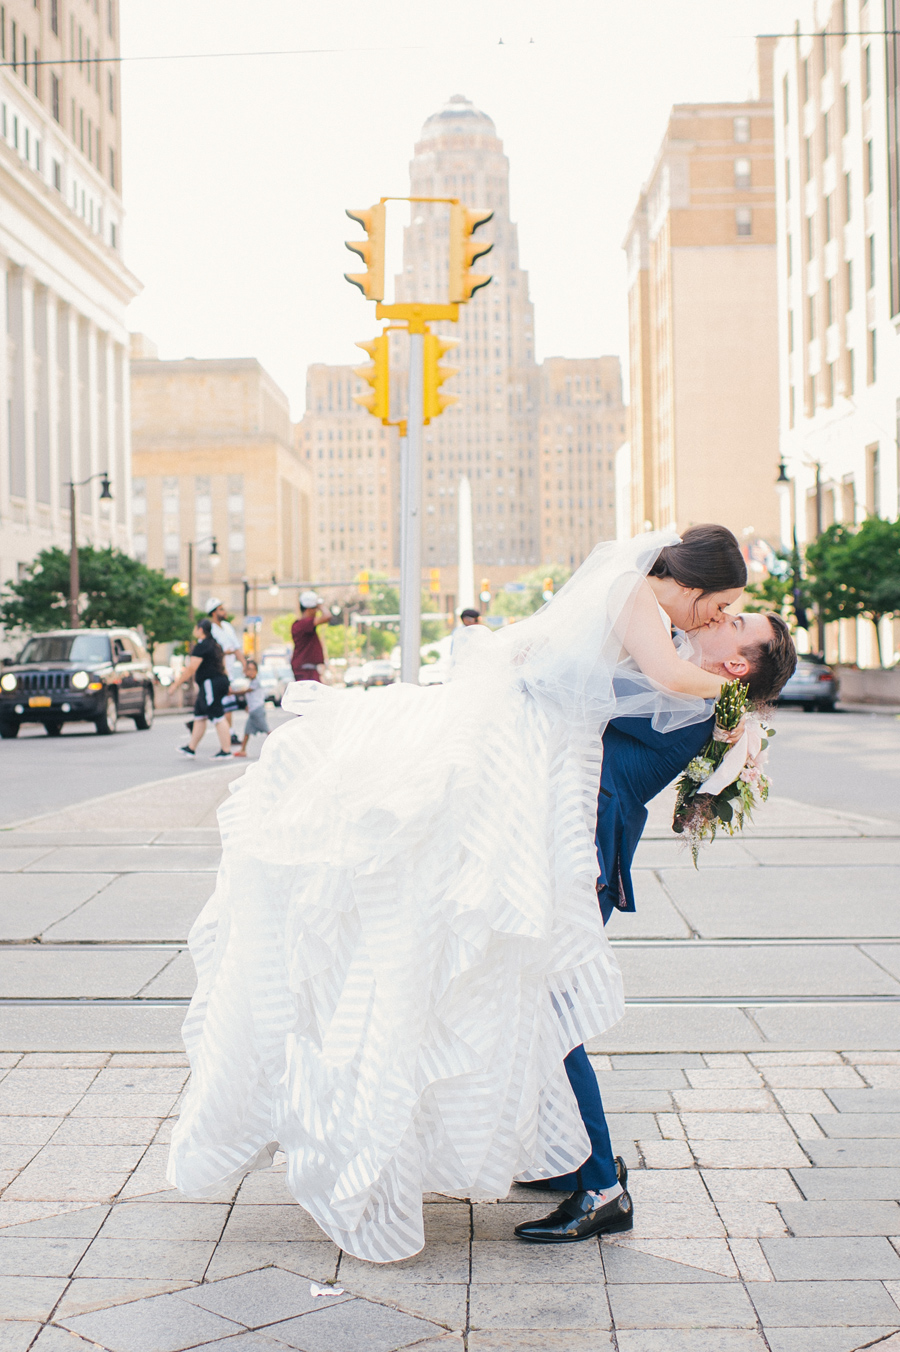 groom lifting and kissing bride under a traffic light